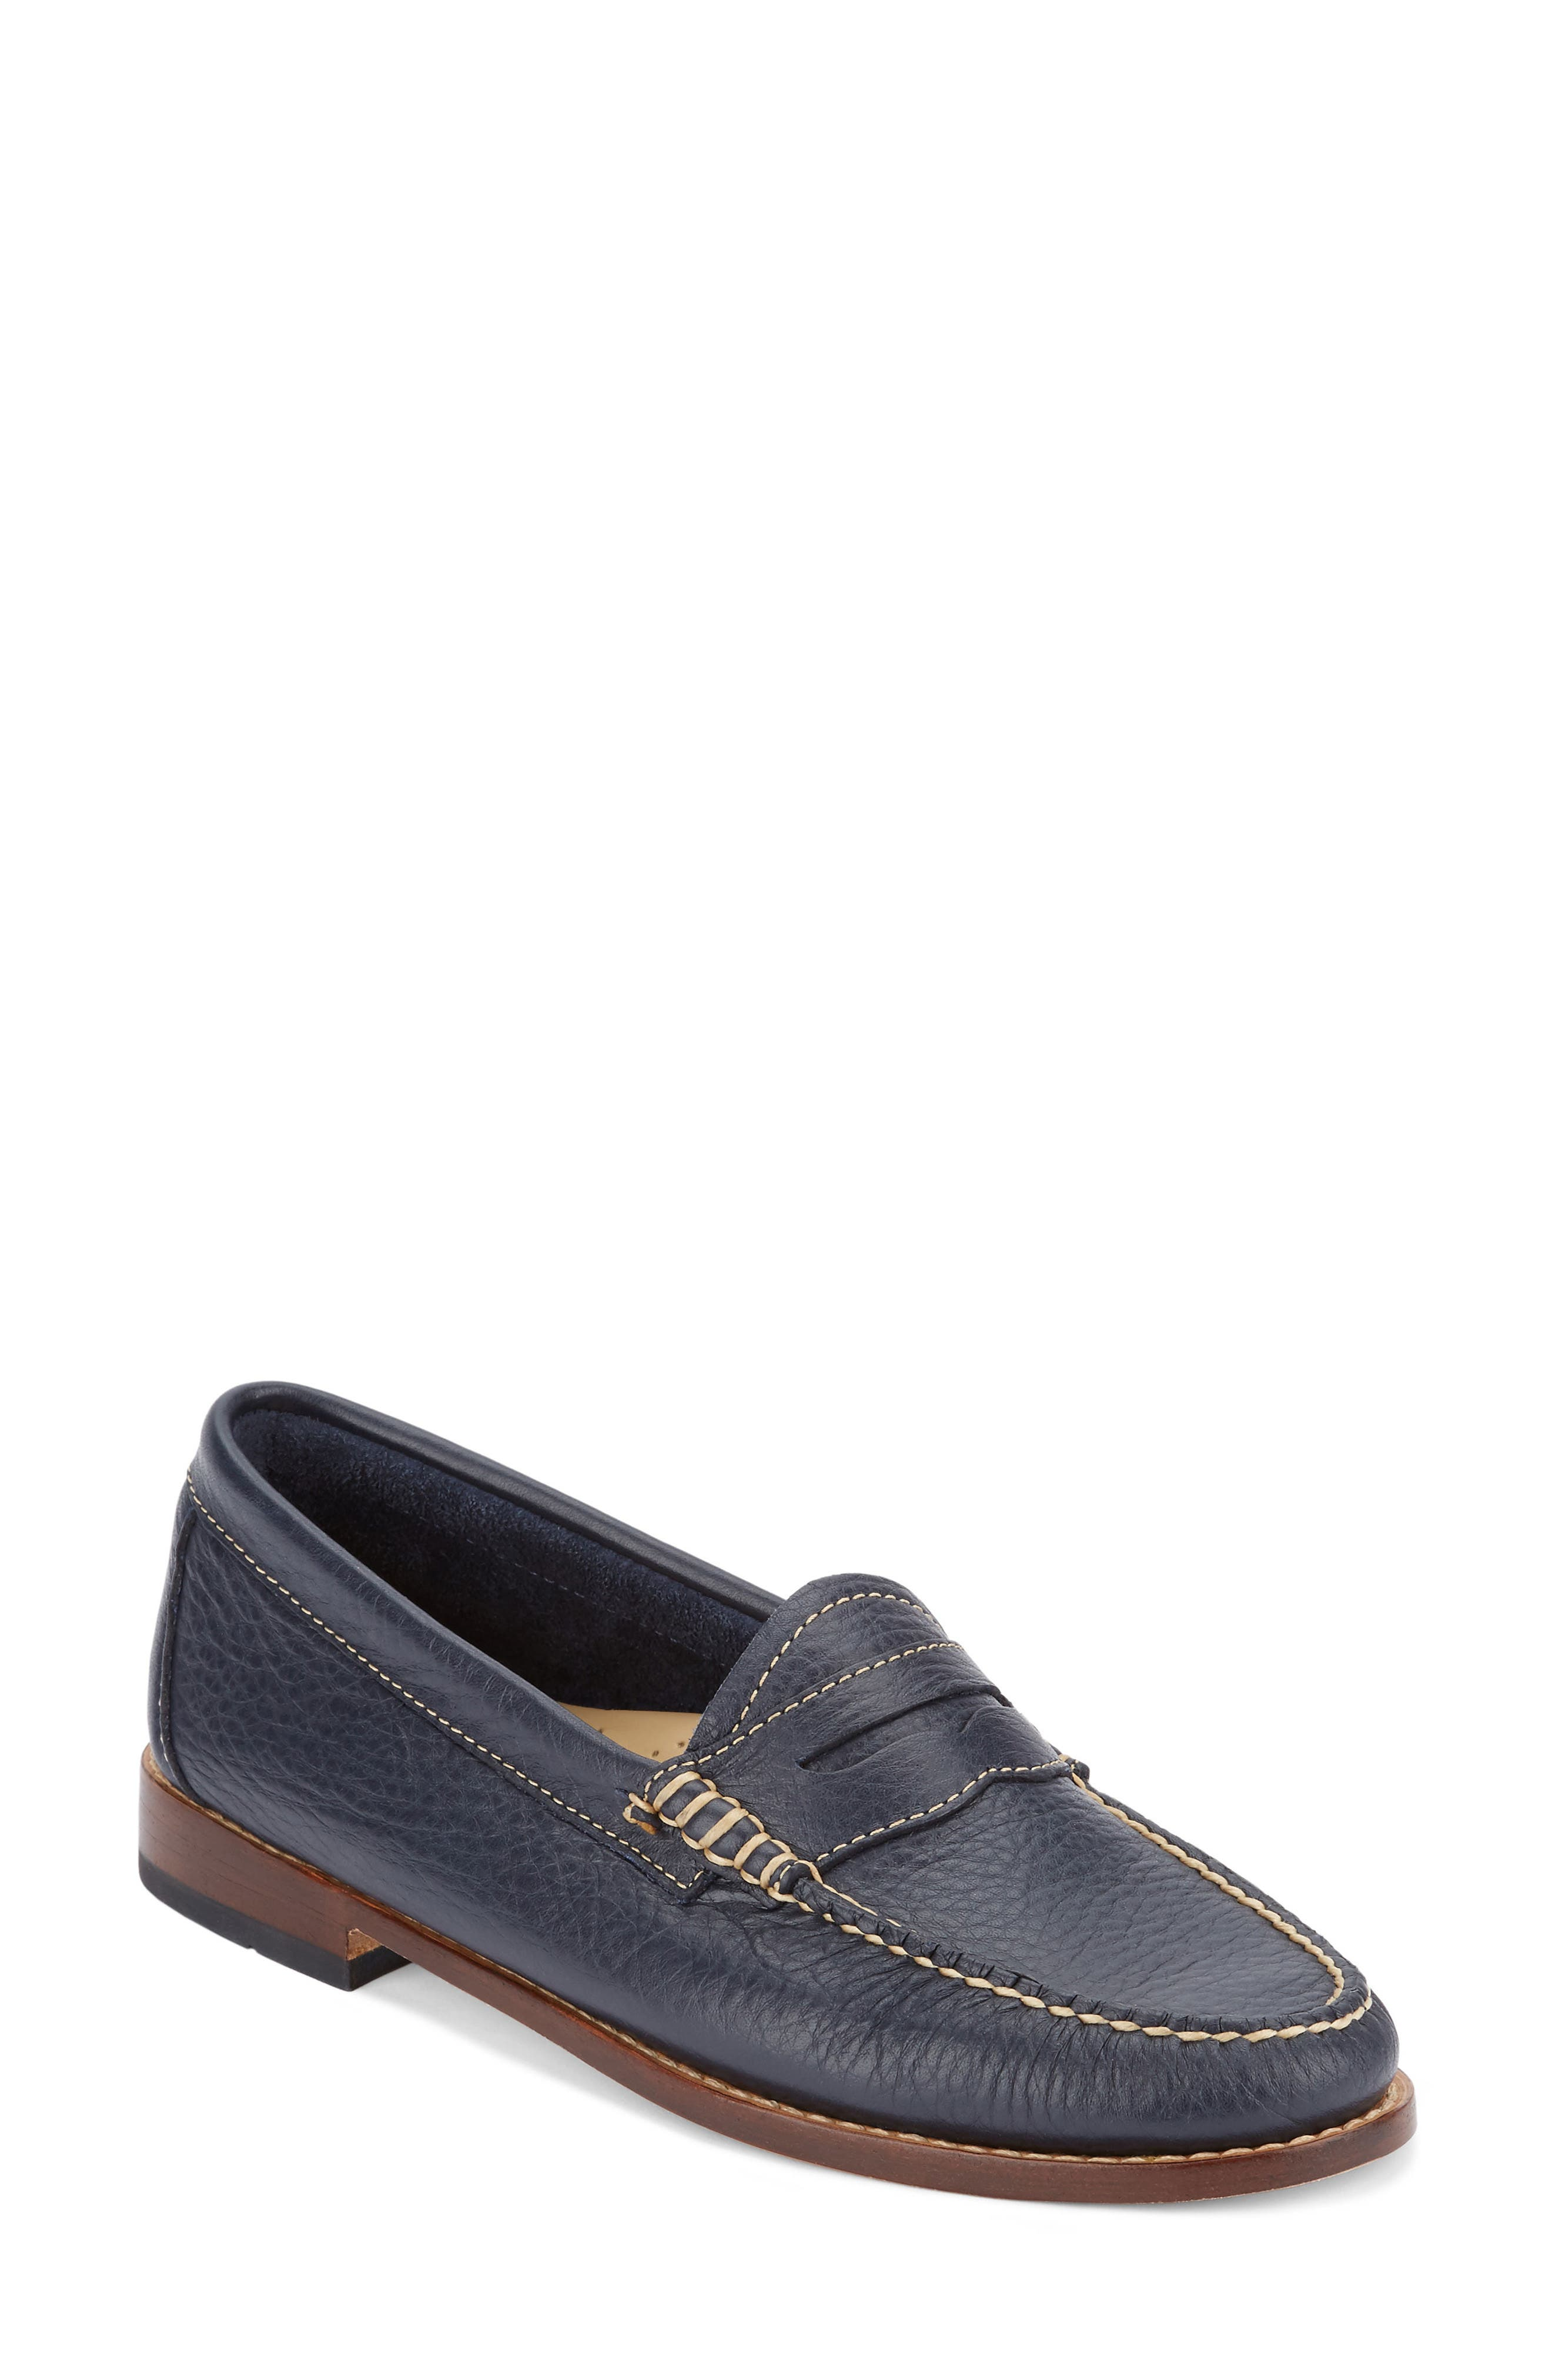 'Whitney' Loafer,                             Main thumbnail 9, color,